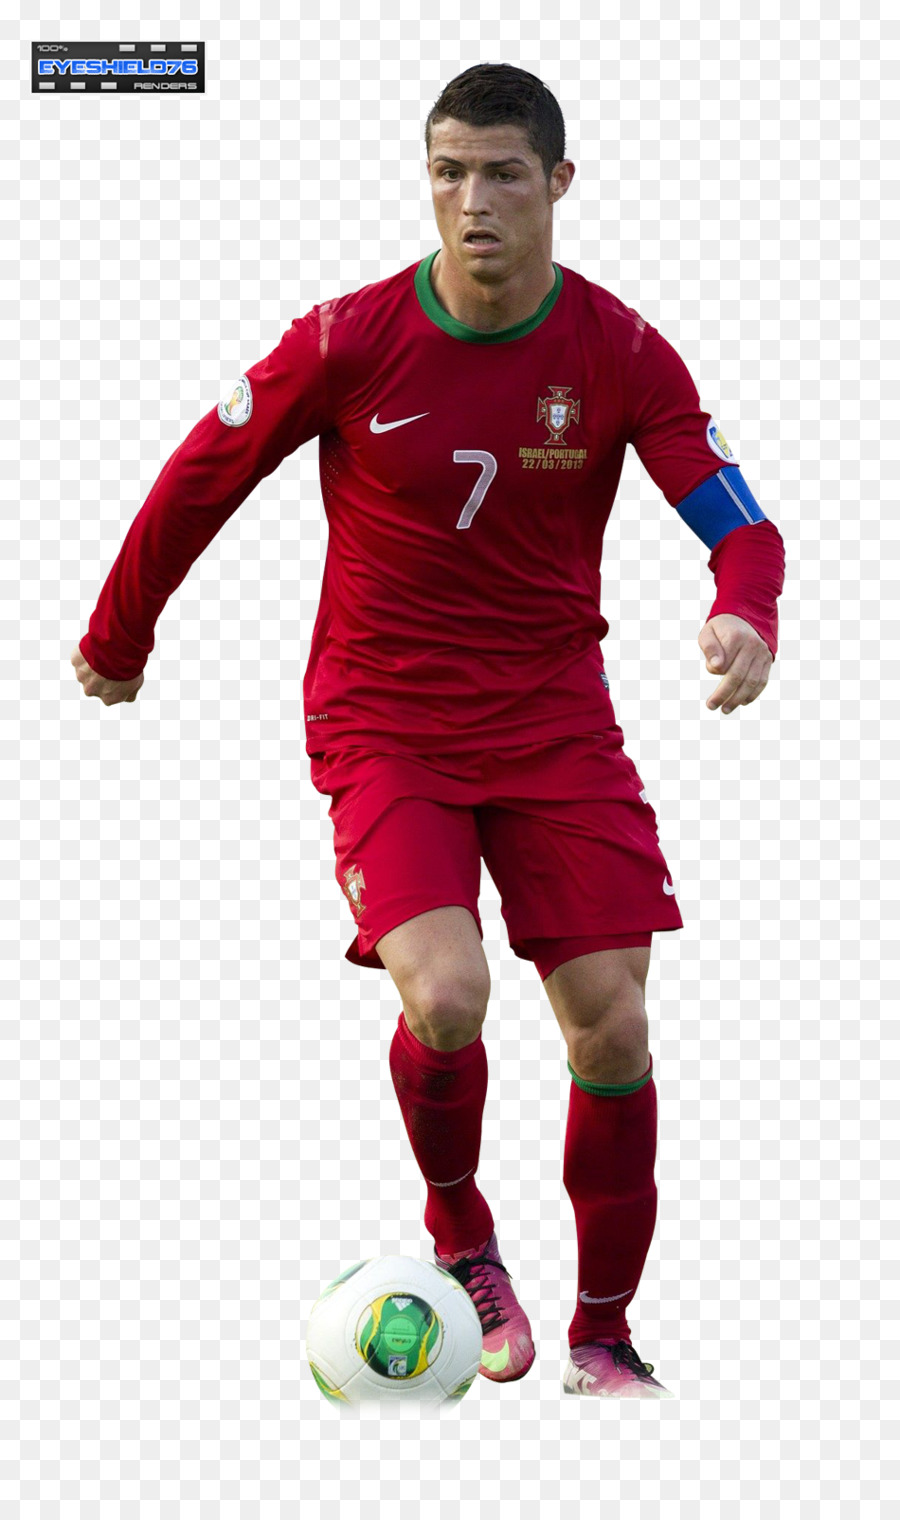 huge discount ef456 f91ce Cristiano Ronaldo png download - 950*1597 - Free Transparent ...